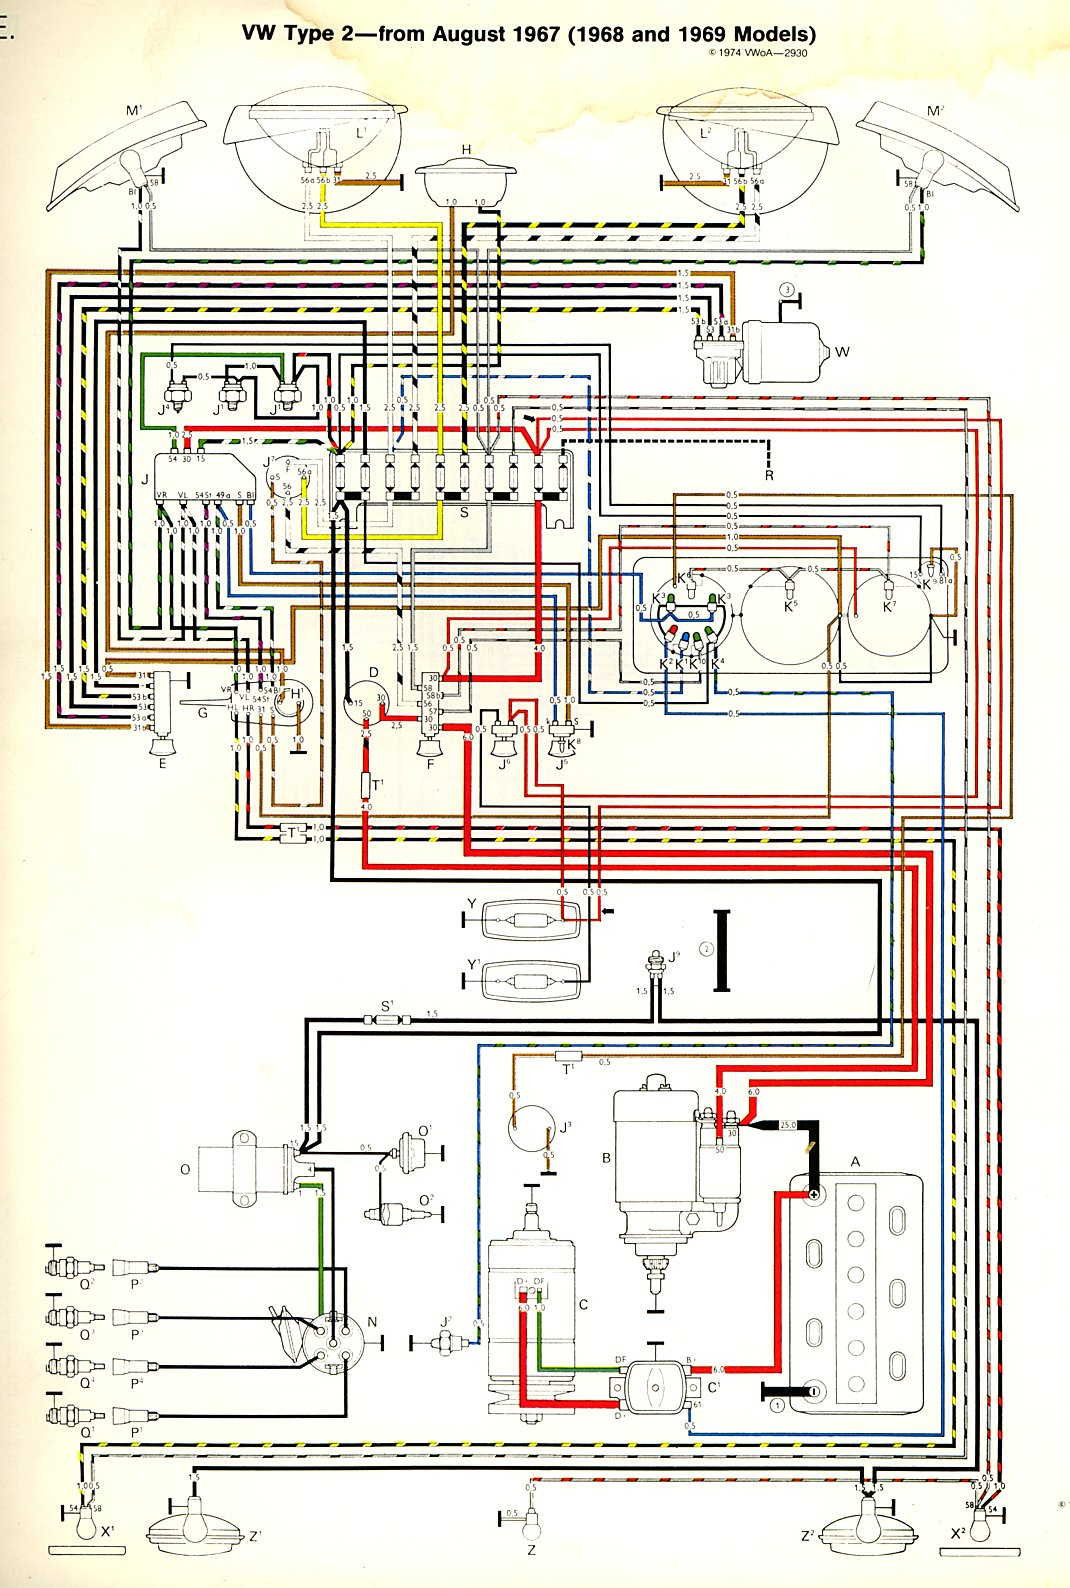 baybus_6869a 74 vw bug wiring diagram cardboard tube support diagram \u2022 free Wiring Harness Diagram at creativeand.co